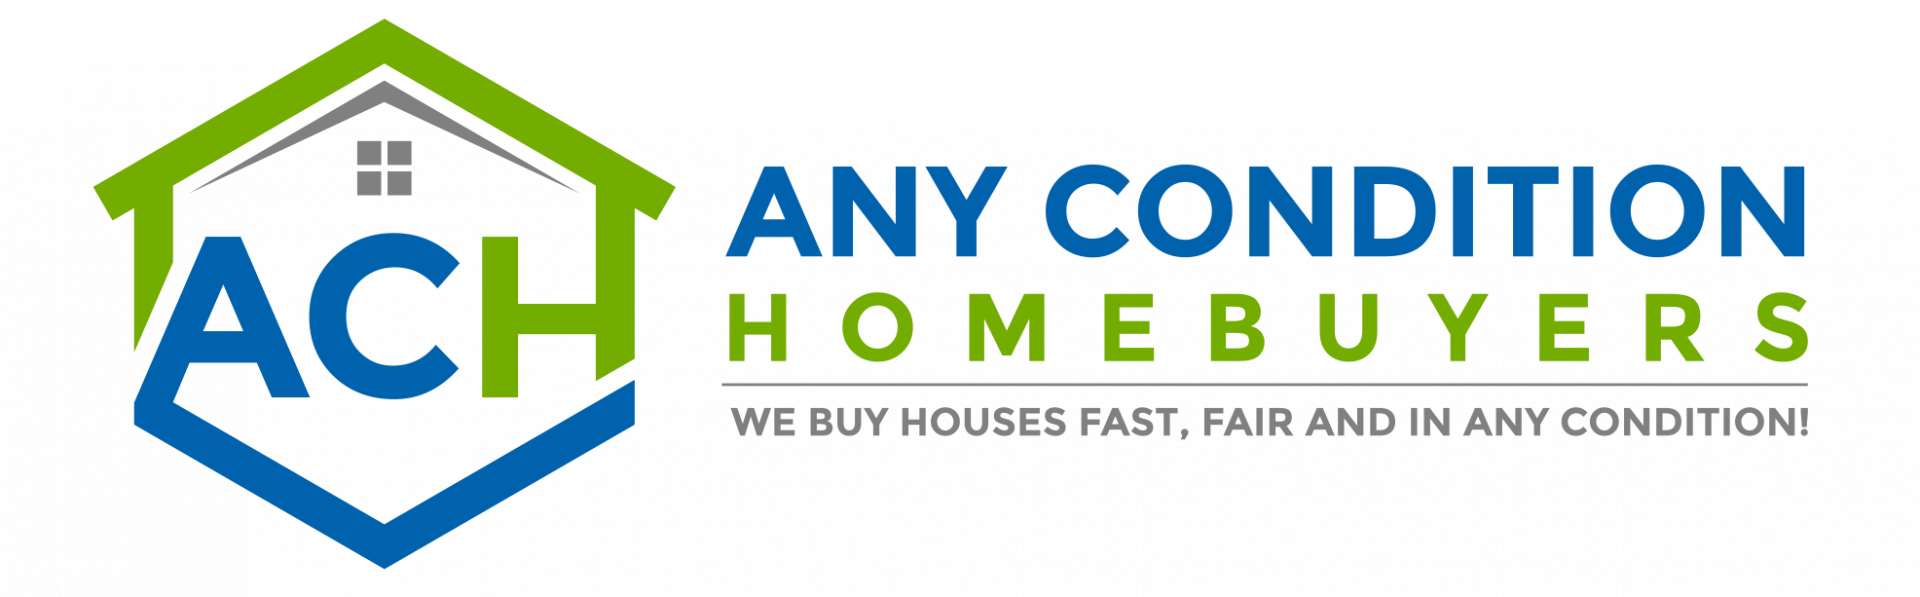 Any Condition Homebuyers  logo